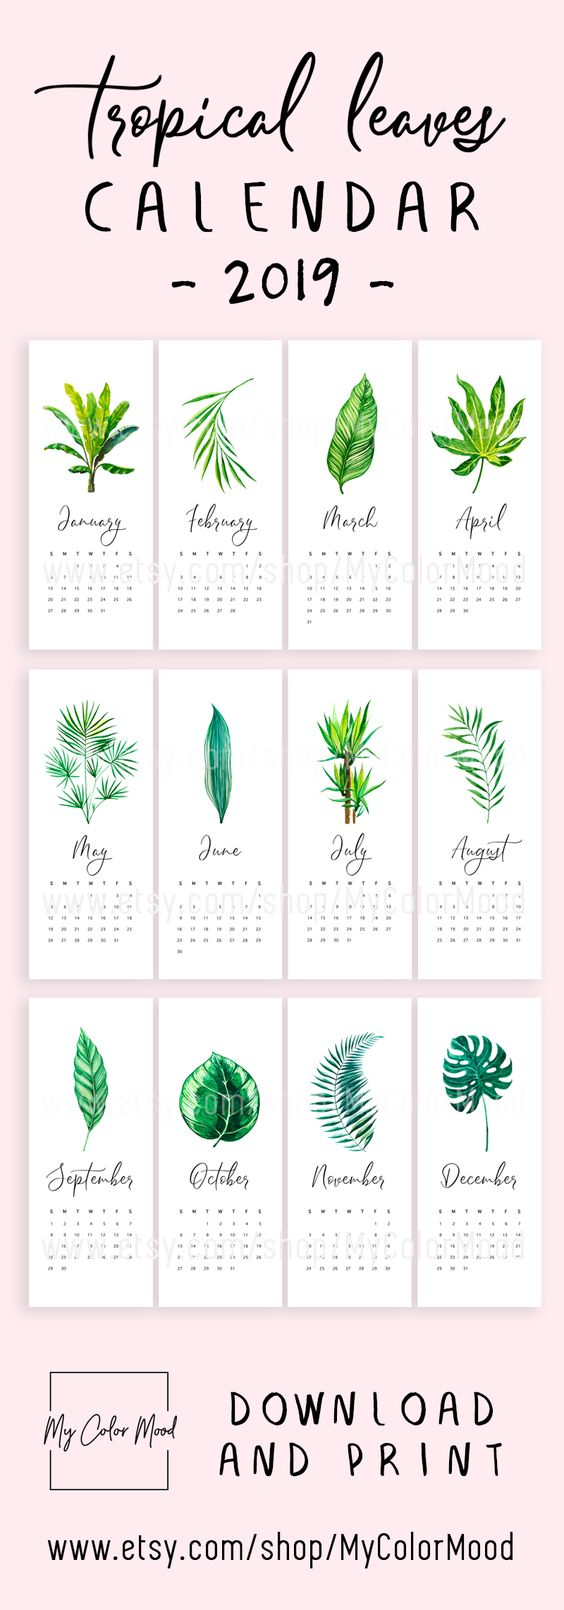 There can never be too many plants in the house! Check out this modern and cute DIY printable calendar with tropical leaves. 12 months are included (January 2019 - December 2019). How to use this calendar: 1) Use a washi tape to stick it to the wall 2) Use a magnet & put it onto a magnetic board 3) Use a pin & pin it on a cork board 4) Use a clothespin, hang it on a string and make a hanging calendar 5) Use a clip to hold all the pages together and use it as a desk calendar